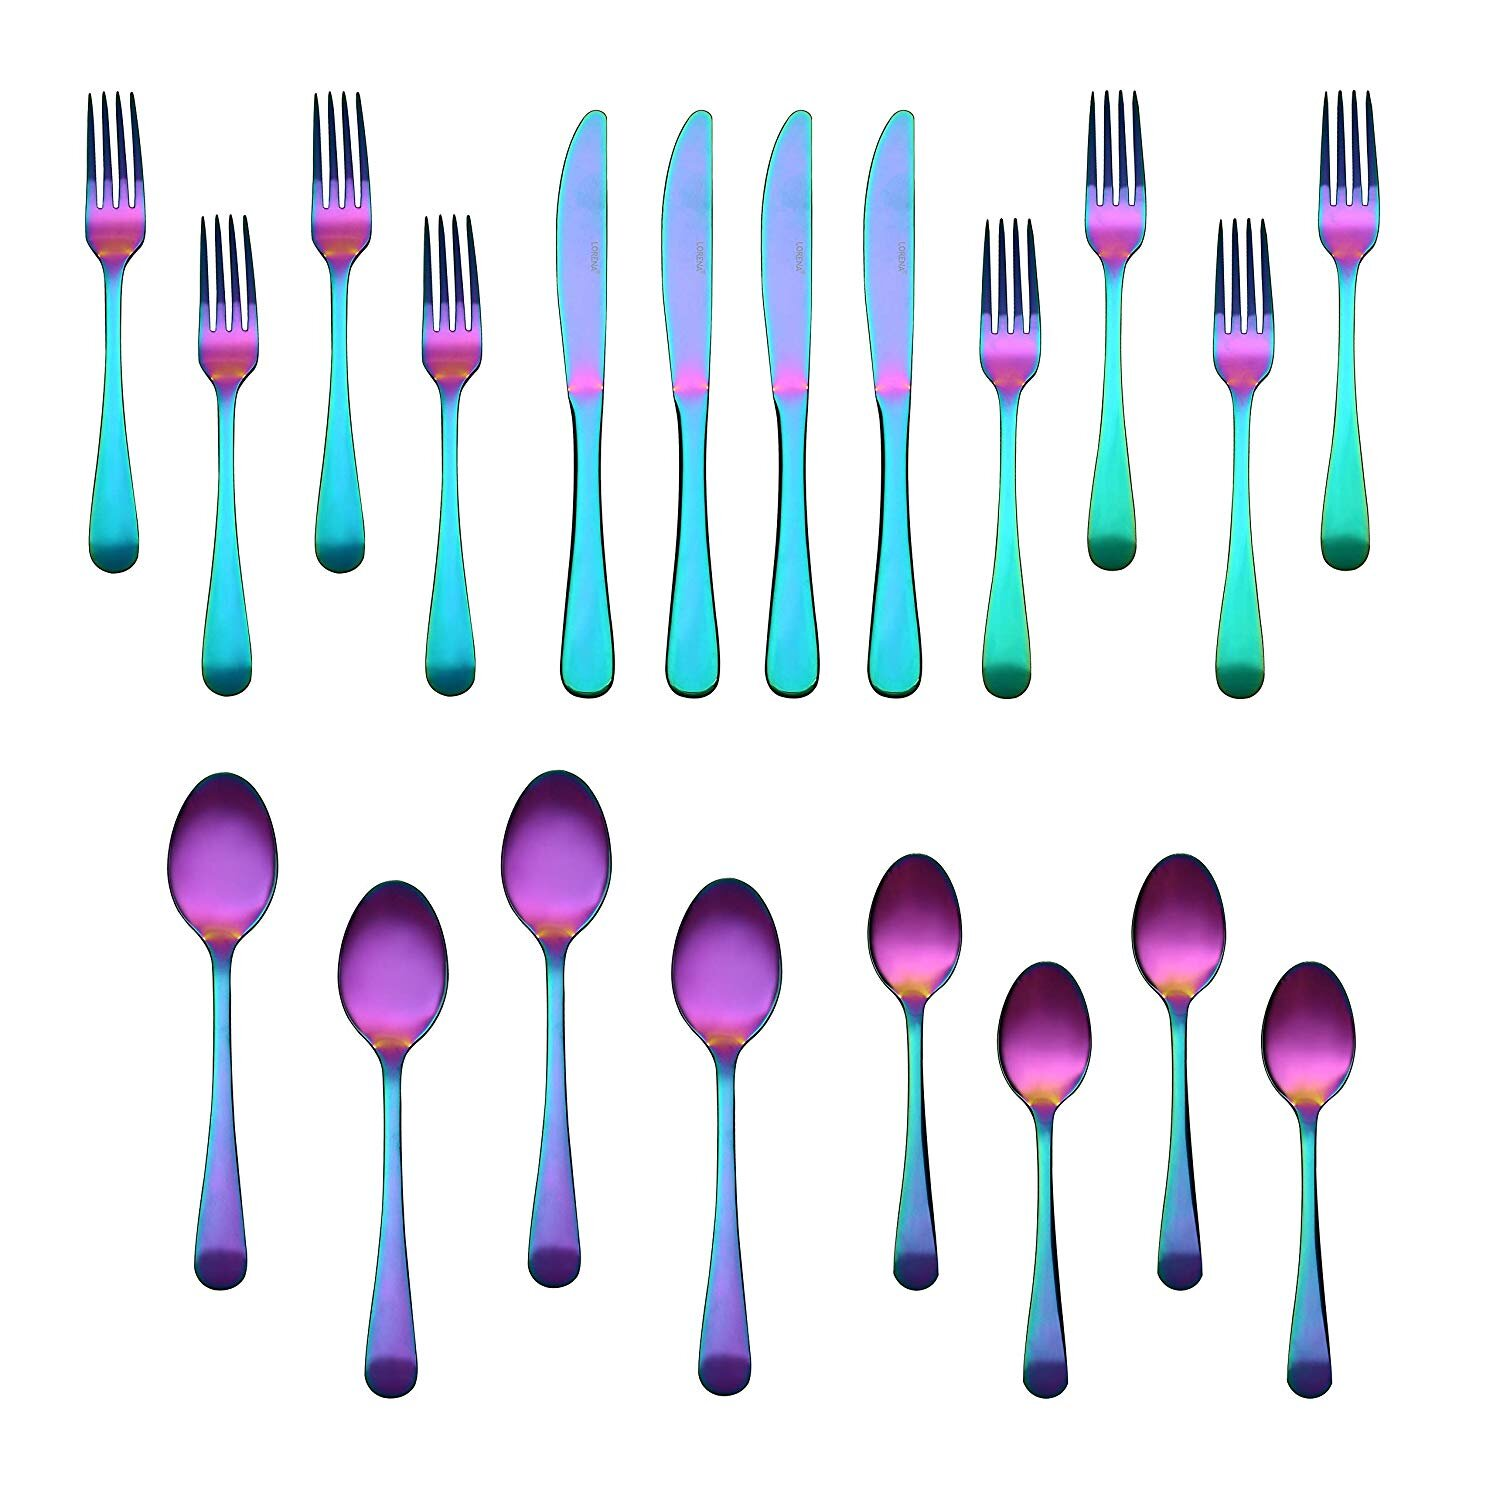 Home 9-piece Portable Tableware Durable Flatware Sets Dishwasher Safe Cutlery